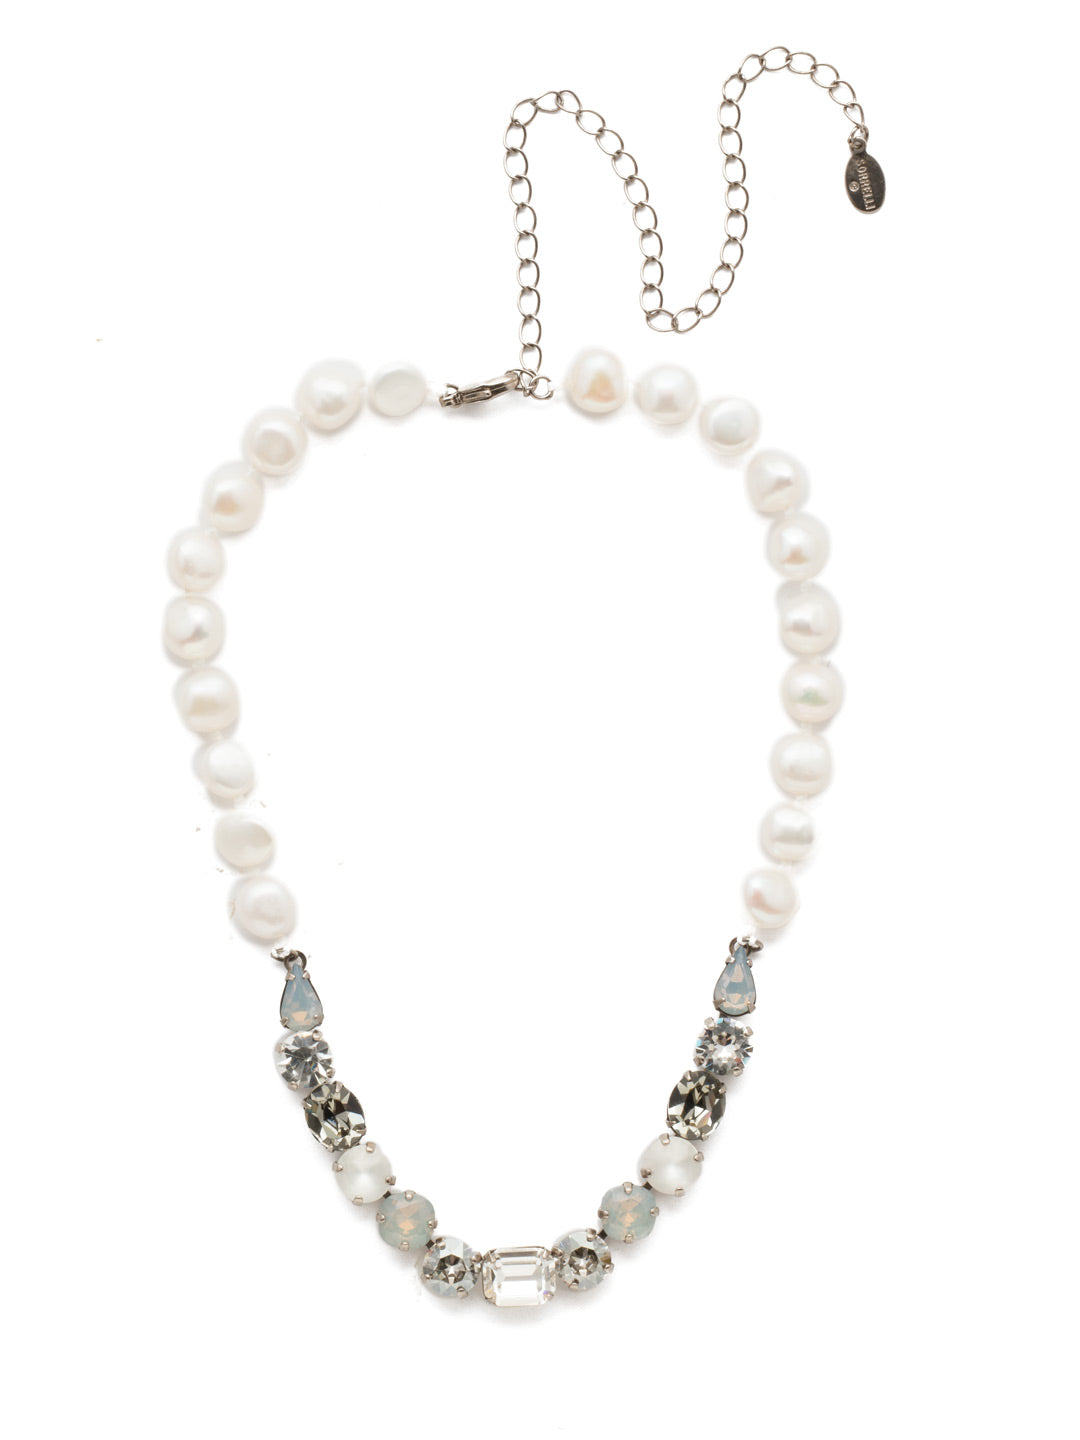 Cadenza Tennis Necklace - NEC14ASSTC